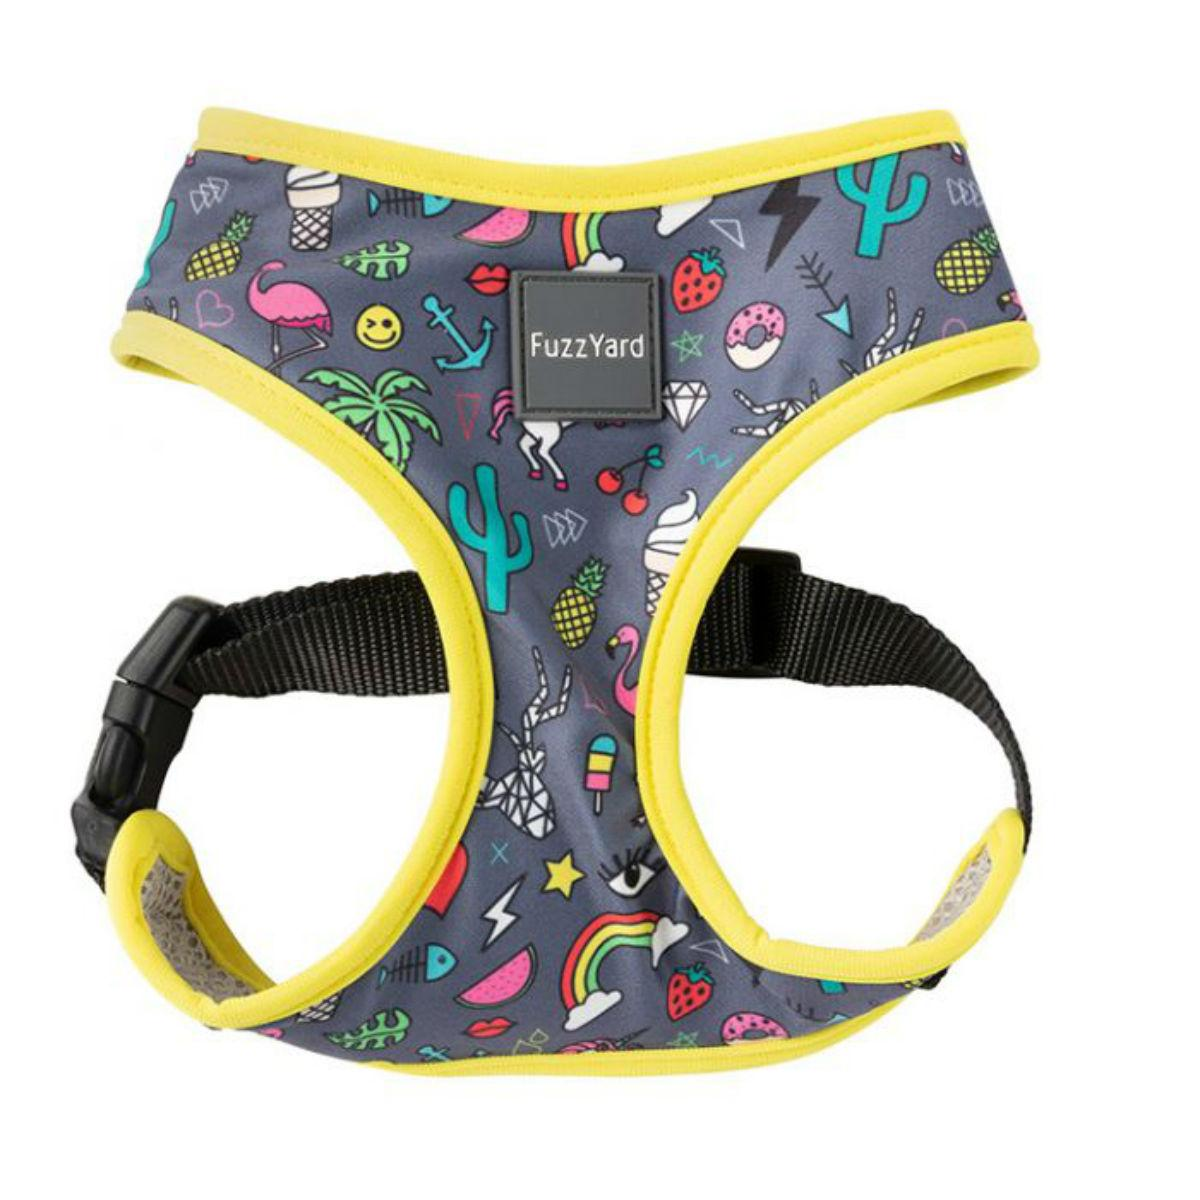 FuzzYard Coachella Dog Harness